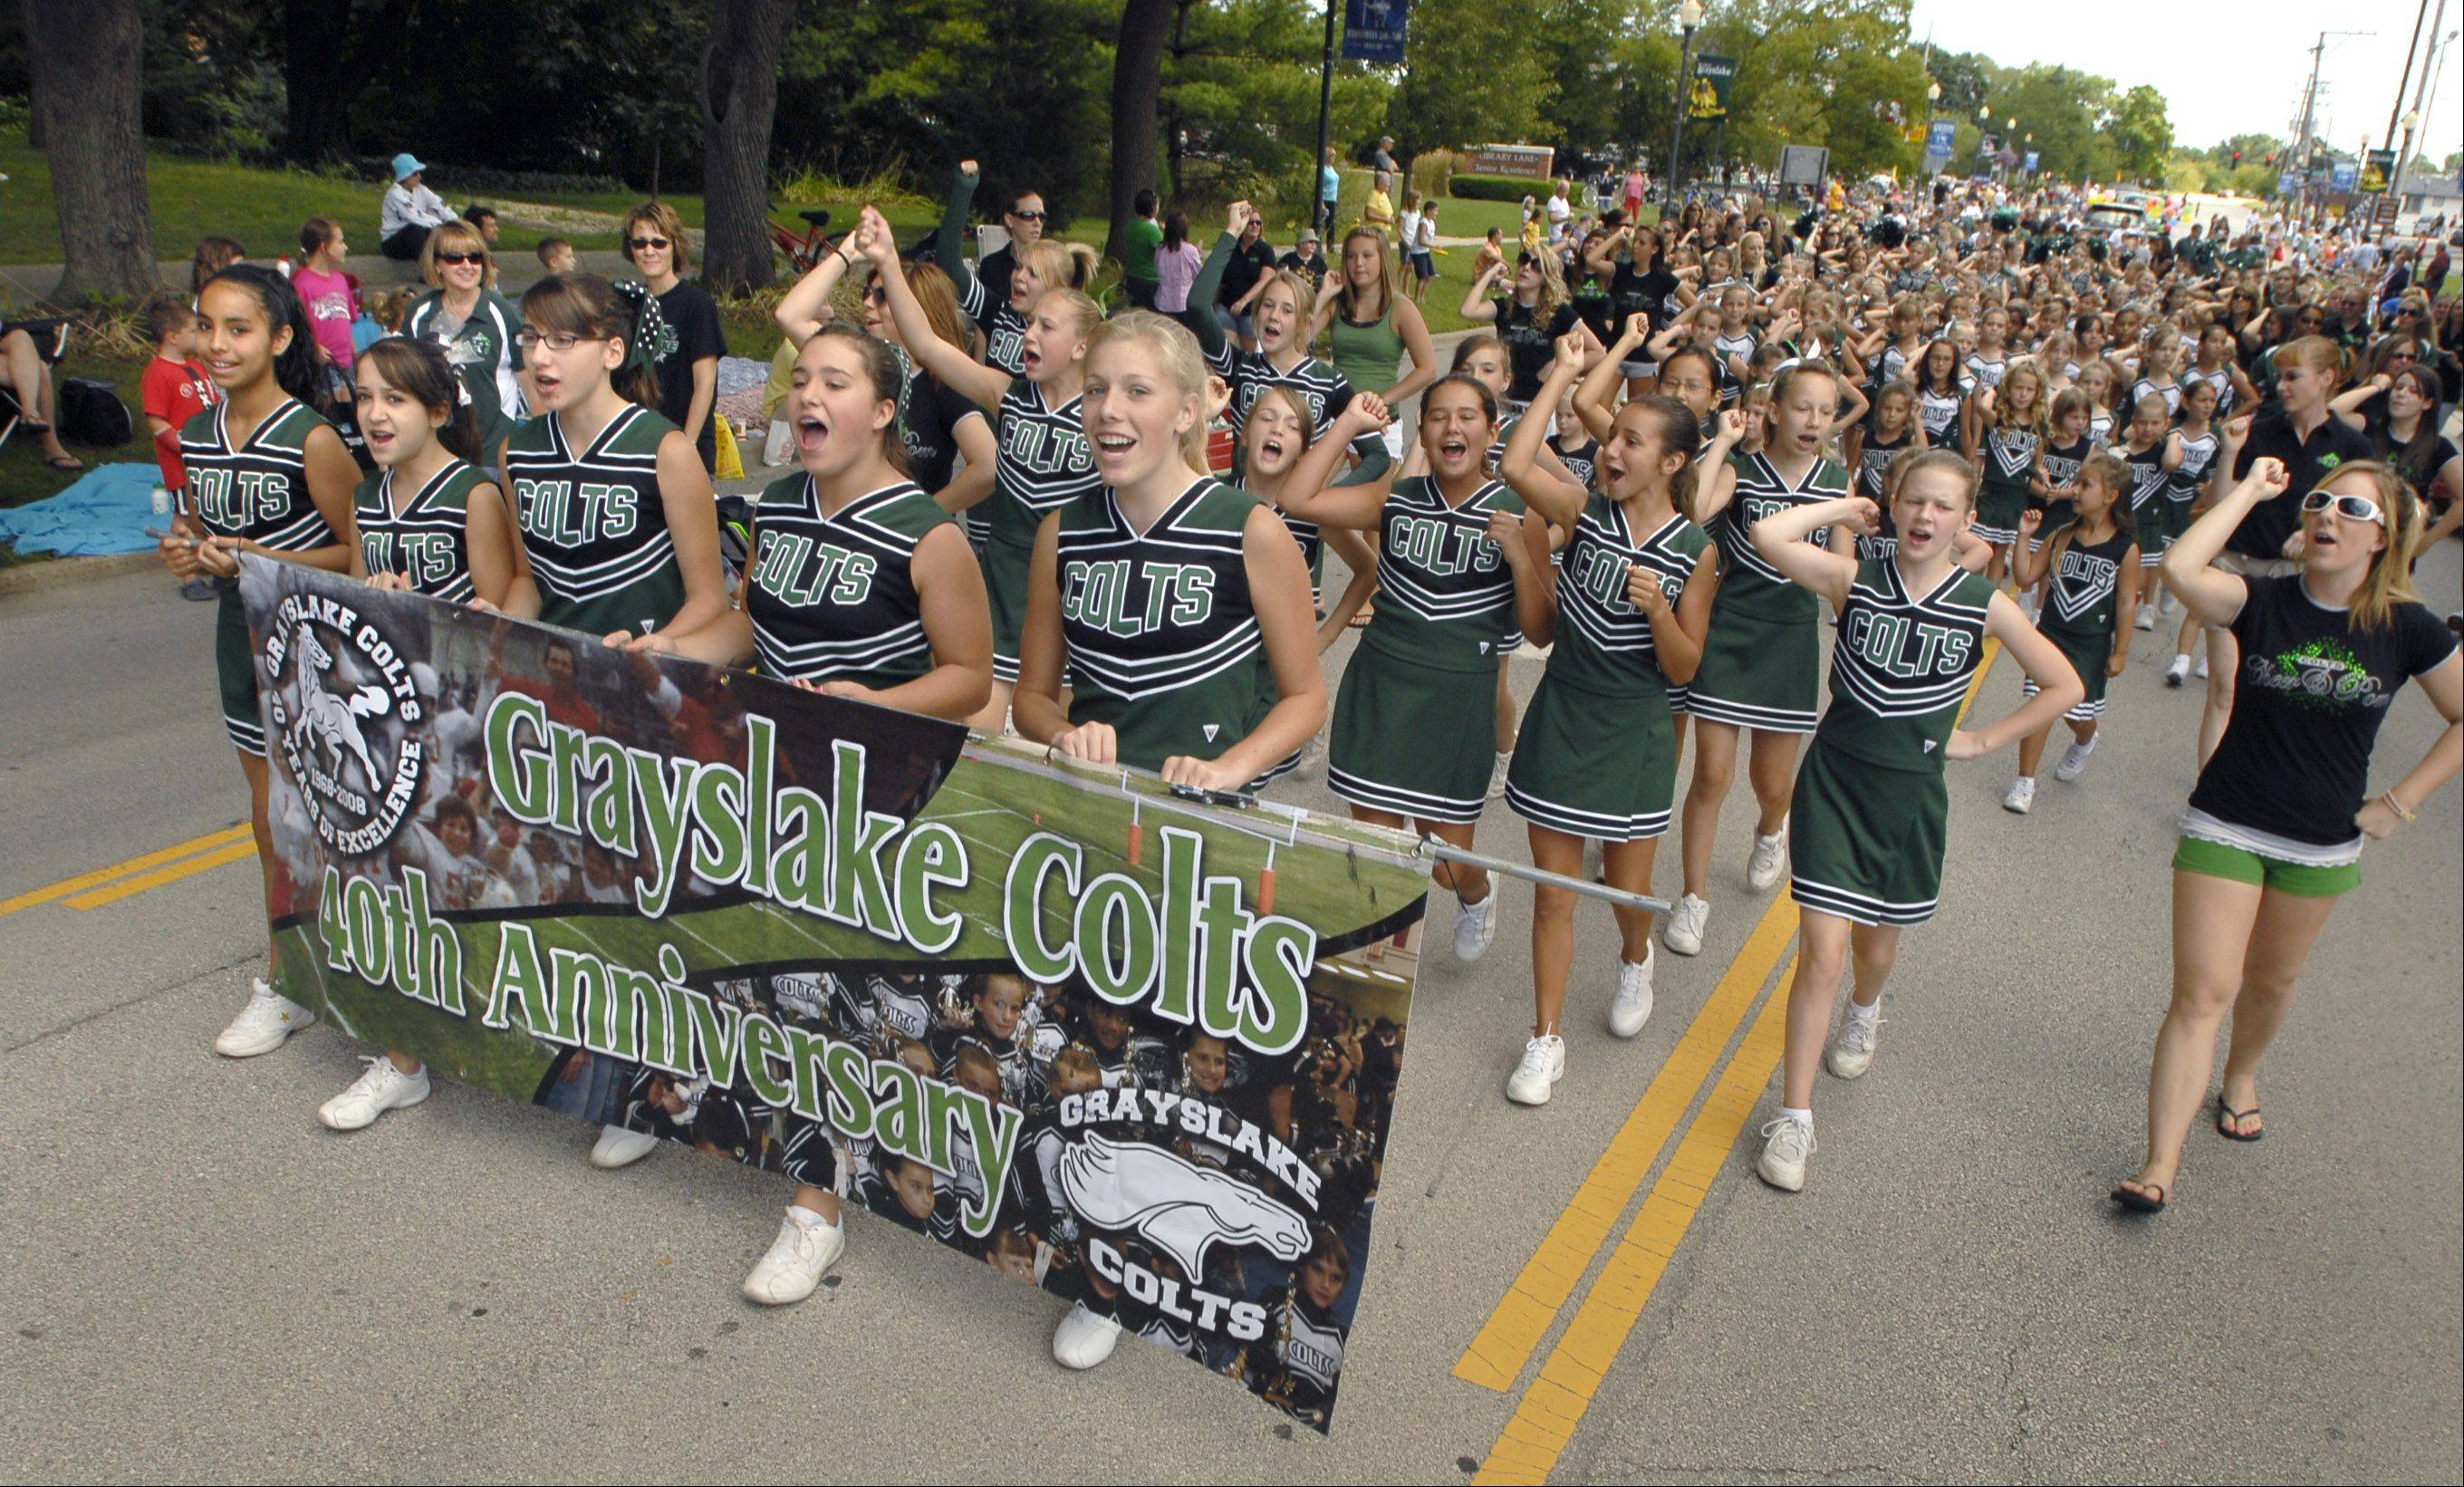 Grayslake Colts cheerleaders filled the street last year for the Summer Days parade. The parade steps off at 7 p.m. Saturday, Aug. 20, from Grayslake Central High School.